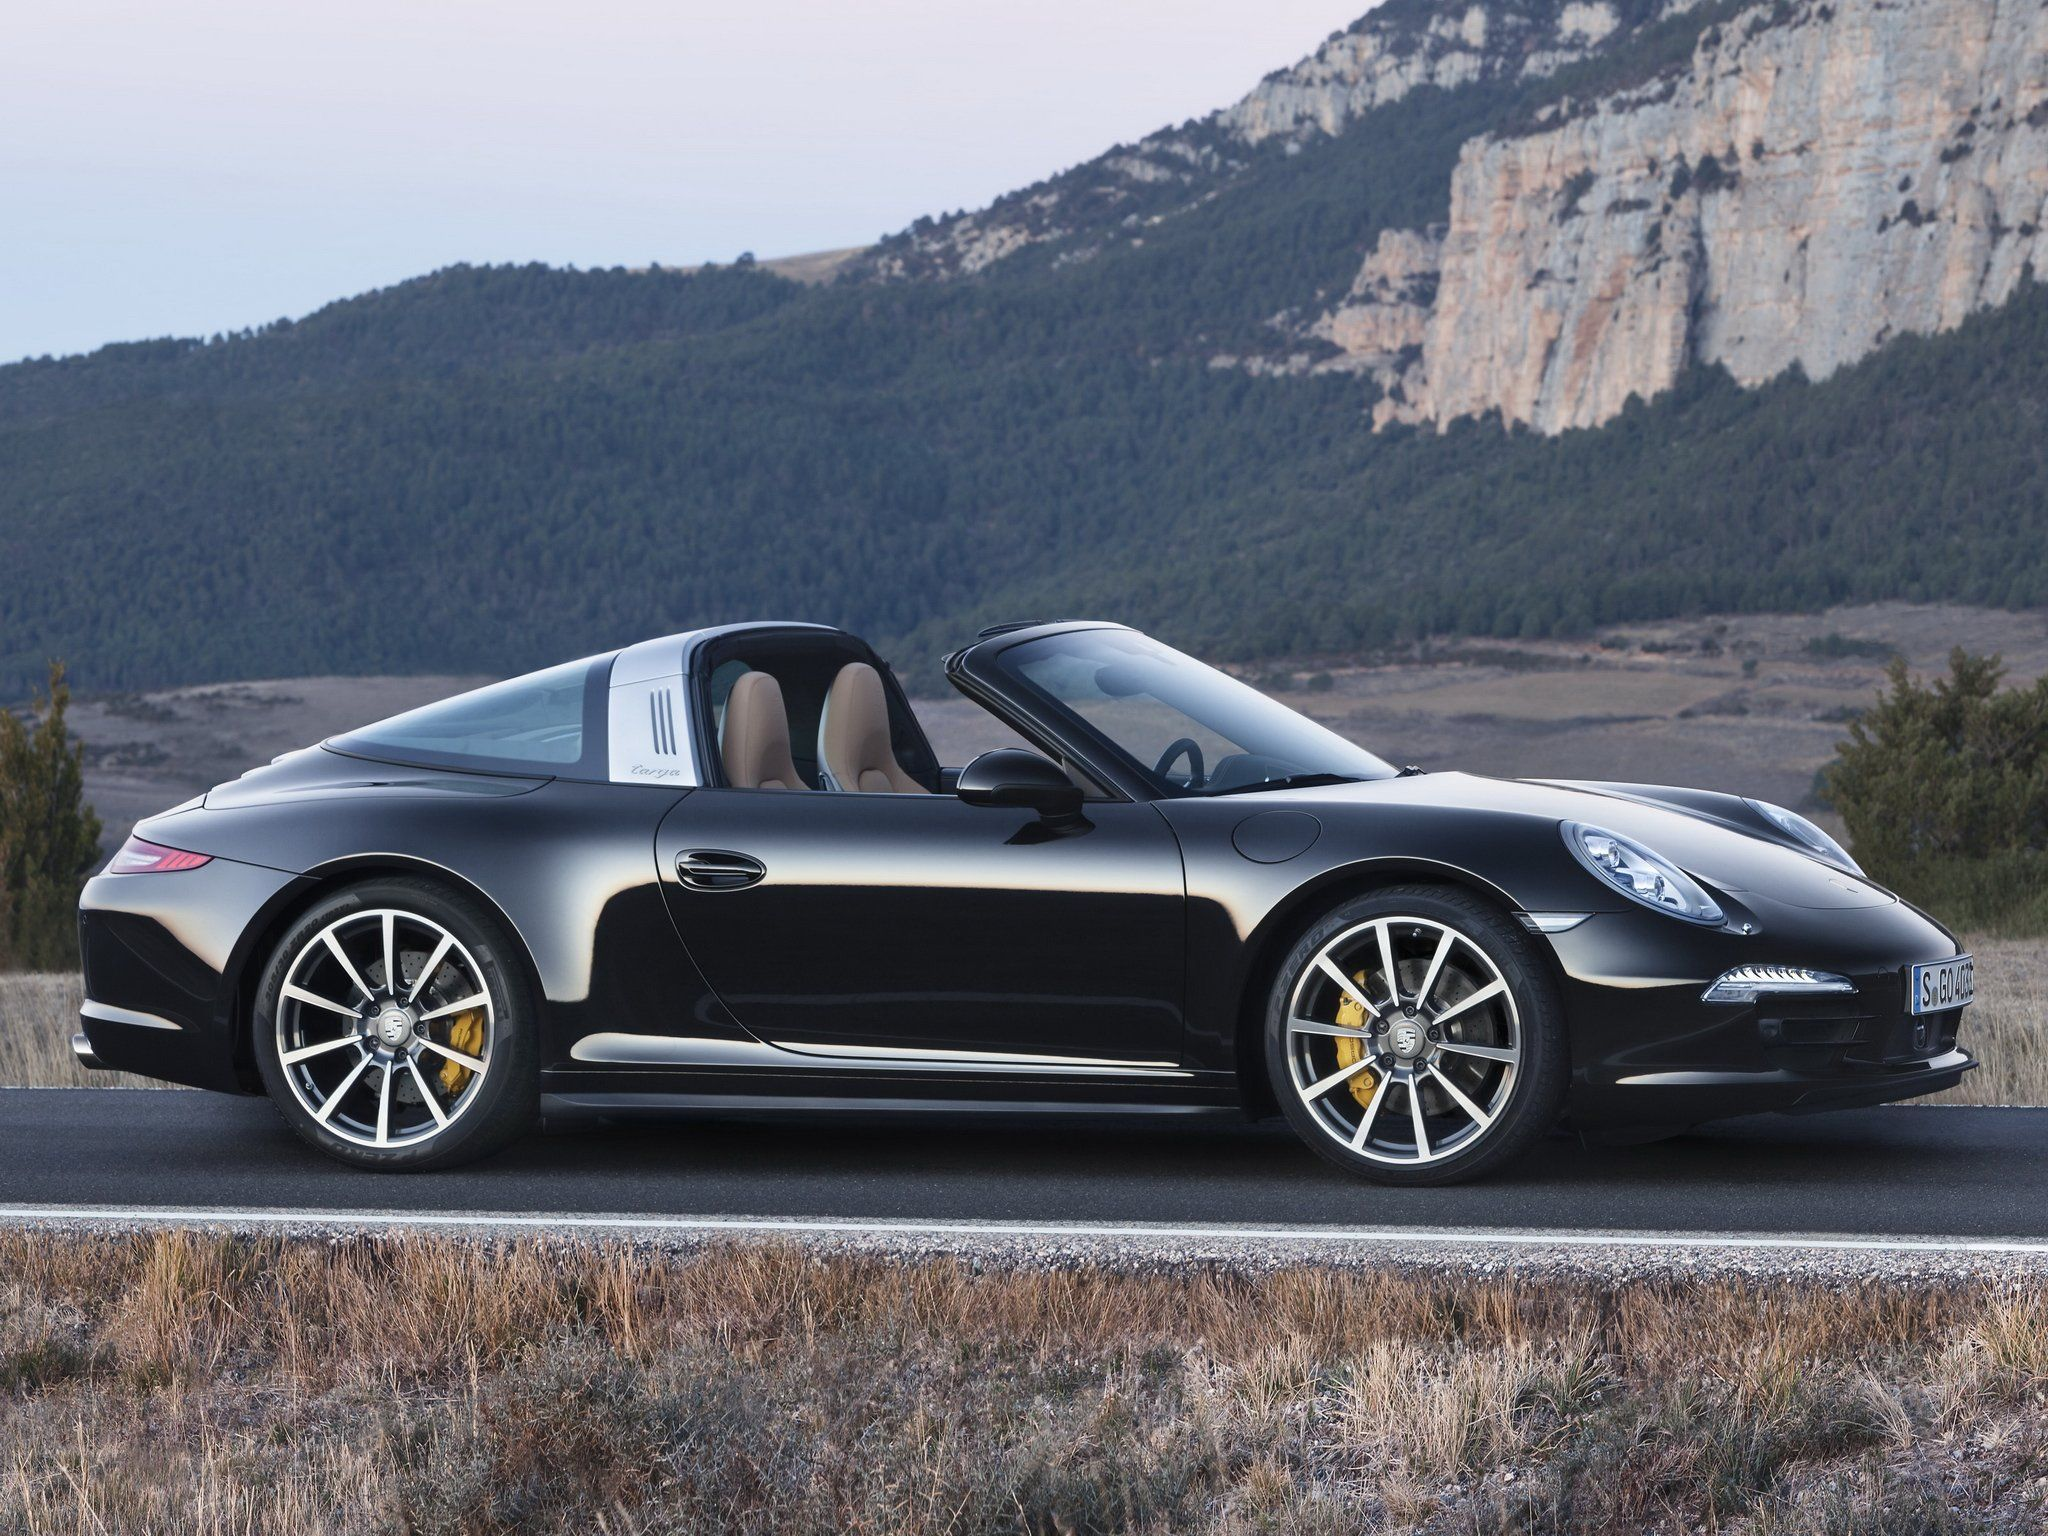 porsche targa 4s daily driver 5 car garage pinterest cars